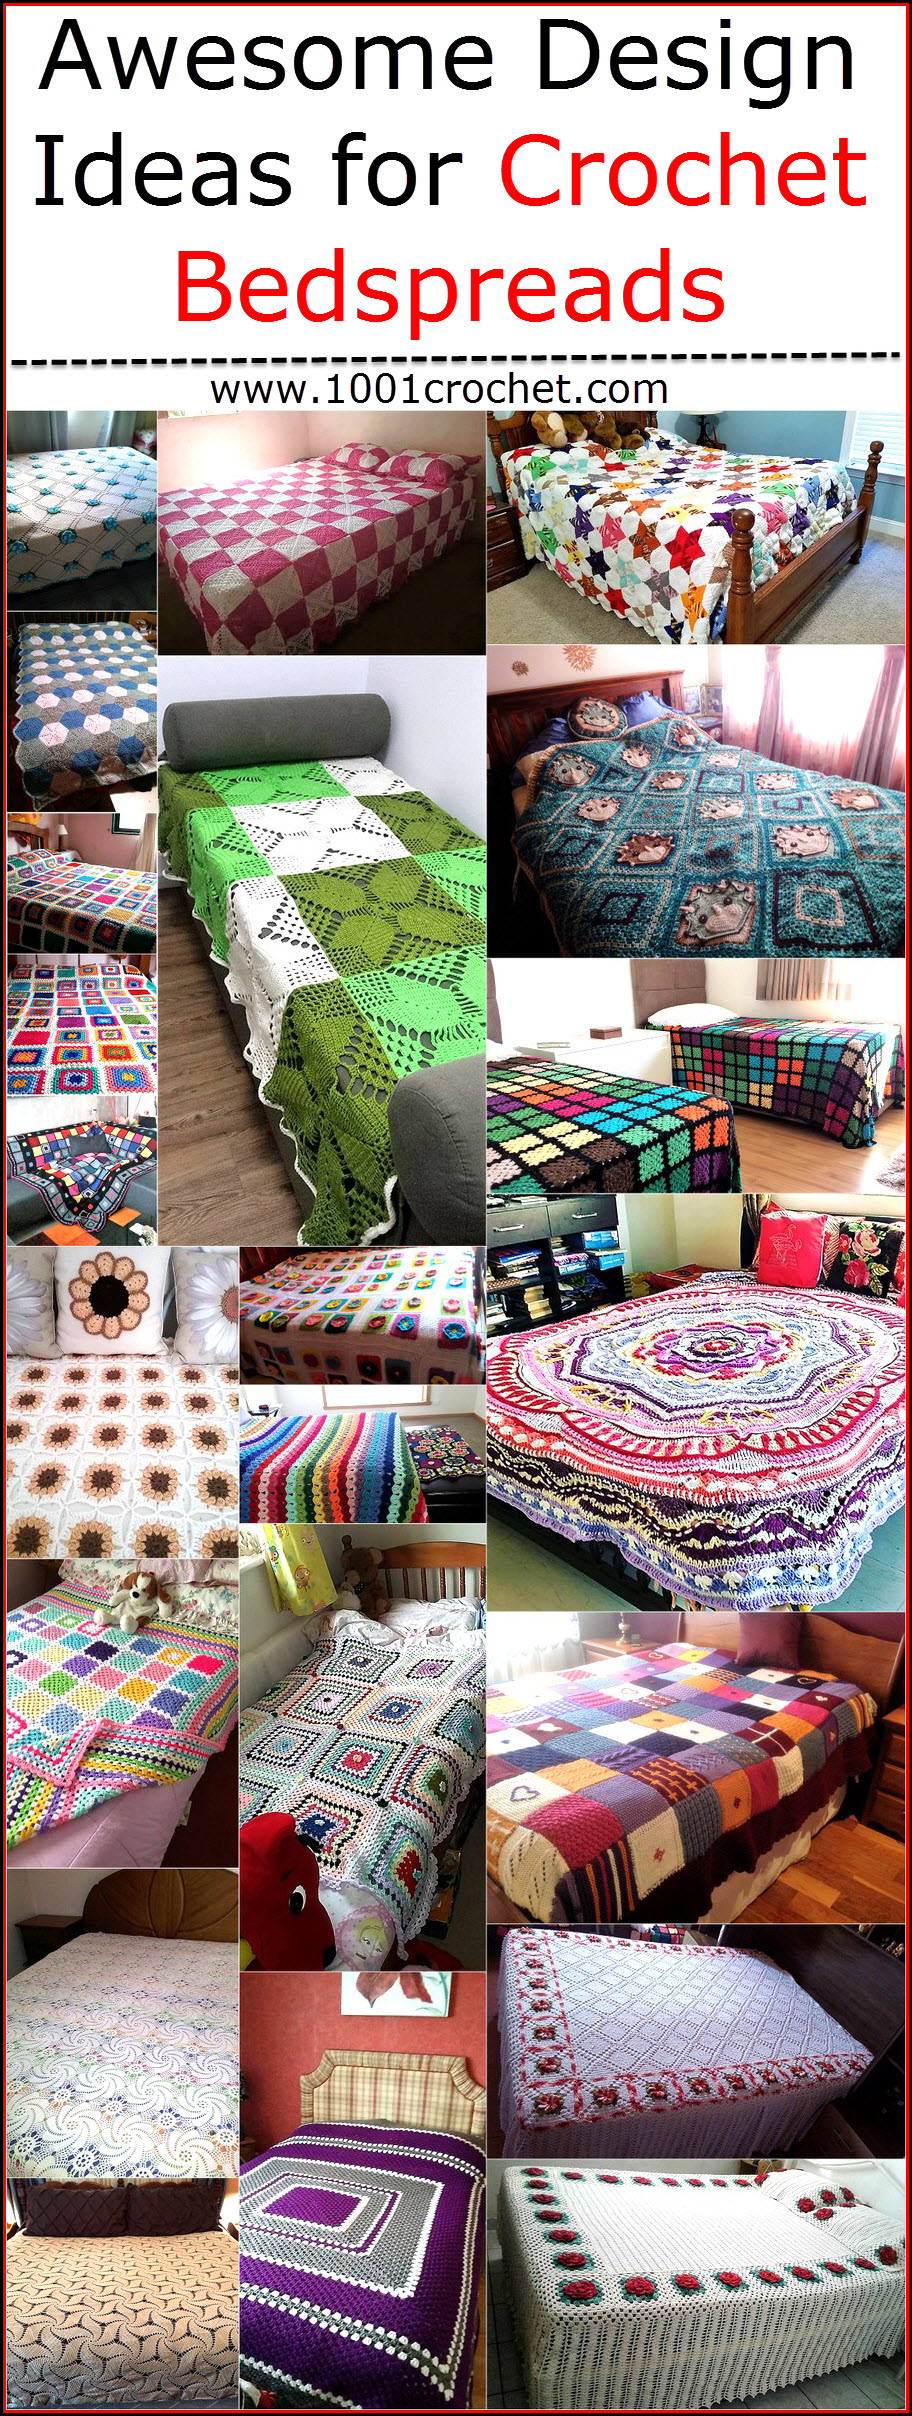 awesome-design-ideas-for-crochet-bedspreads